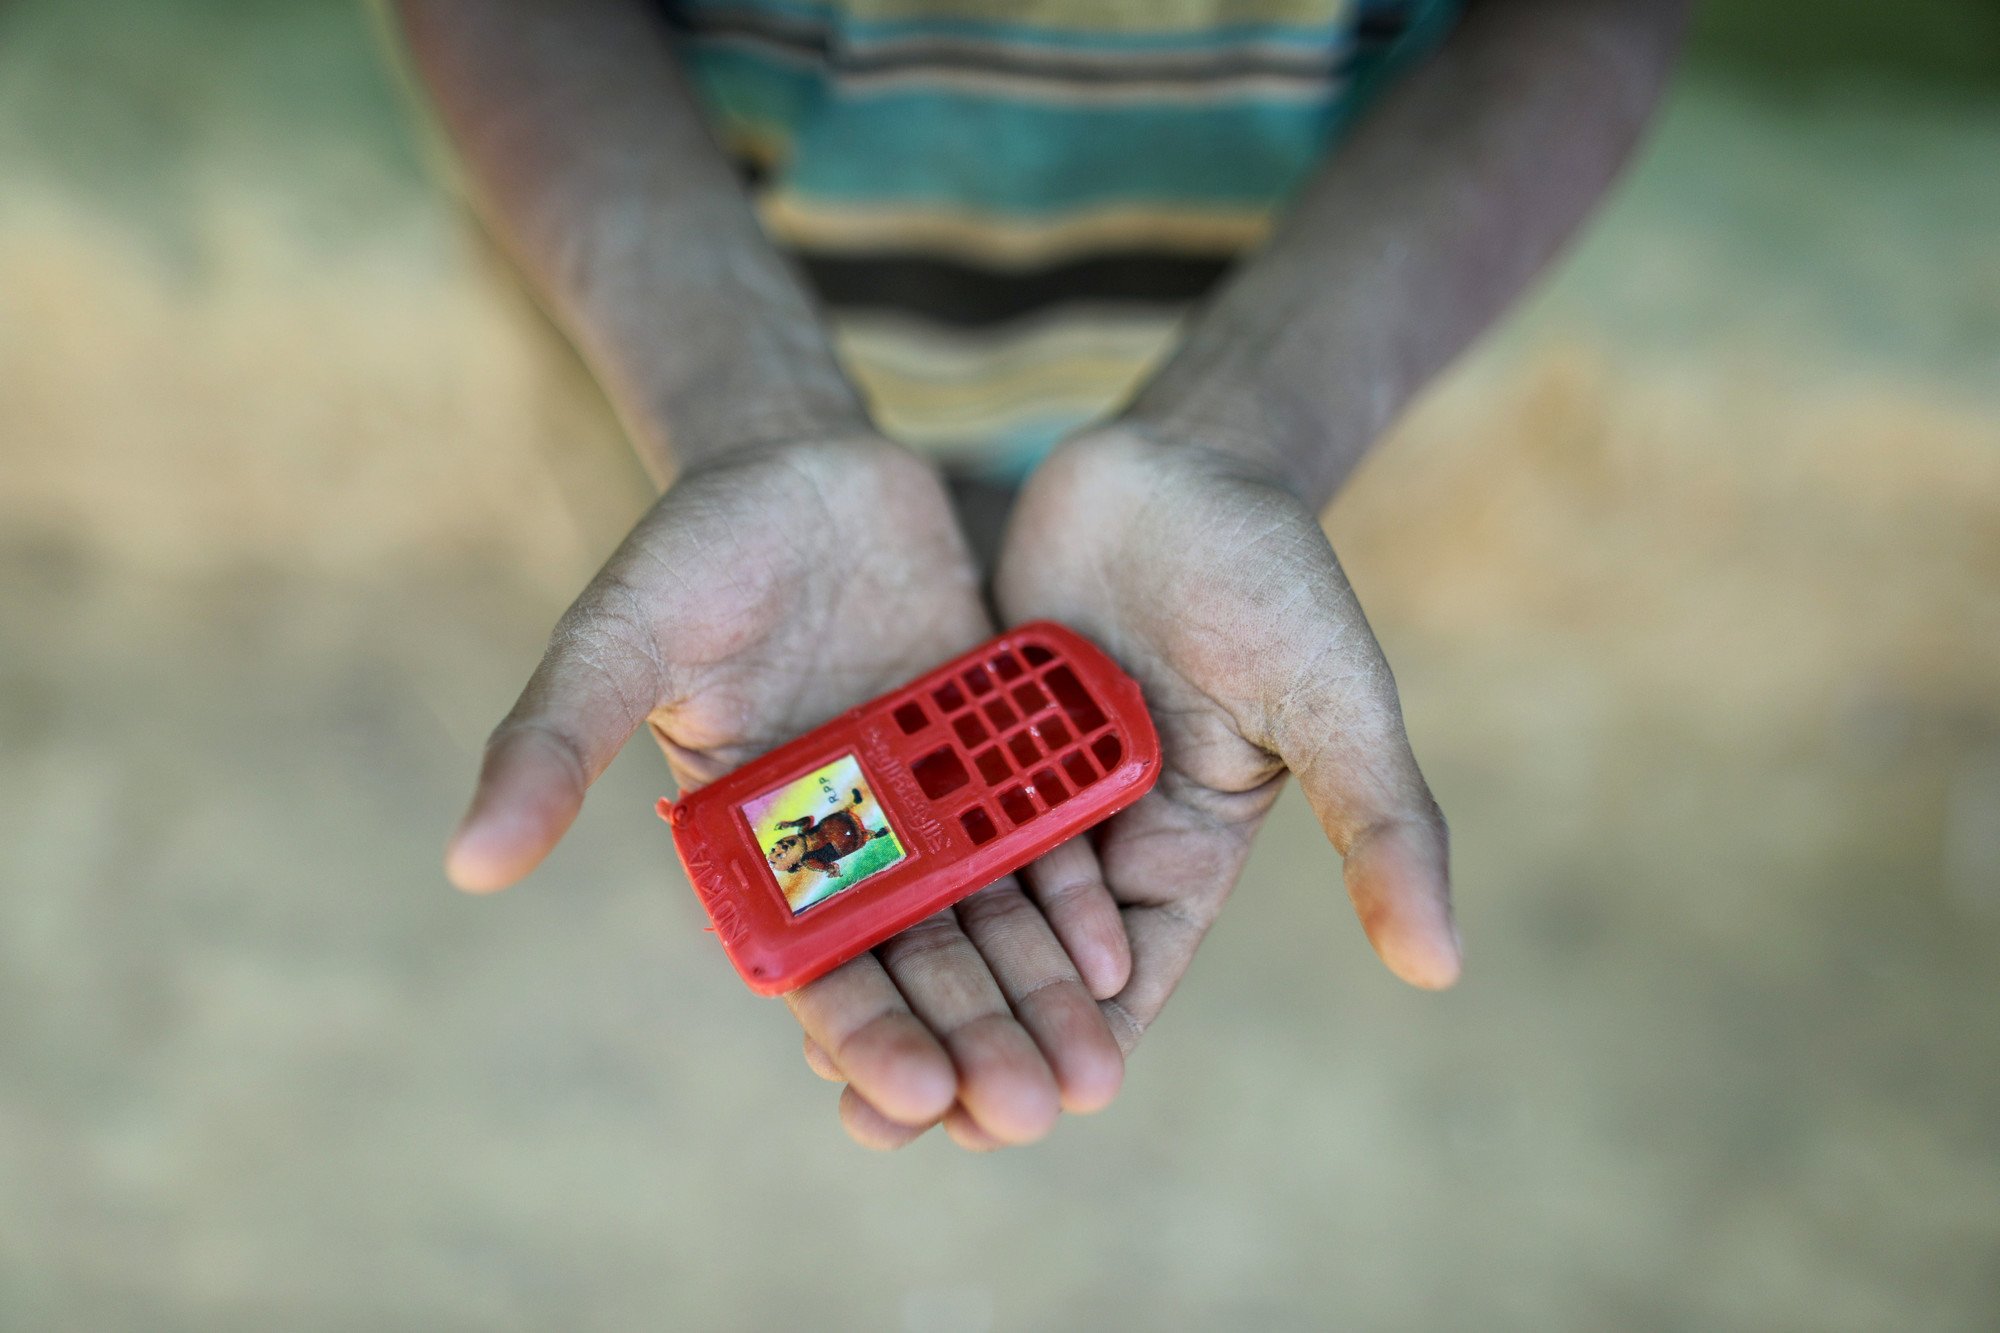 Mohammad found this plastic phone in a snack box he received. The 10-year-old fled Myanmar after his home was burned down. One day he wants to have a real phone to call his friends.